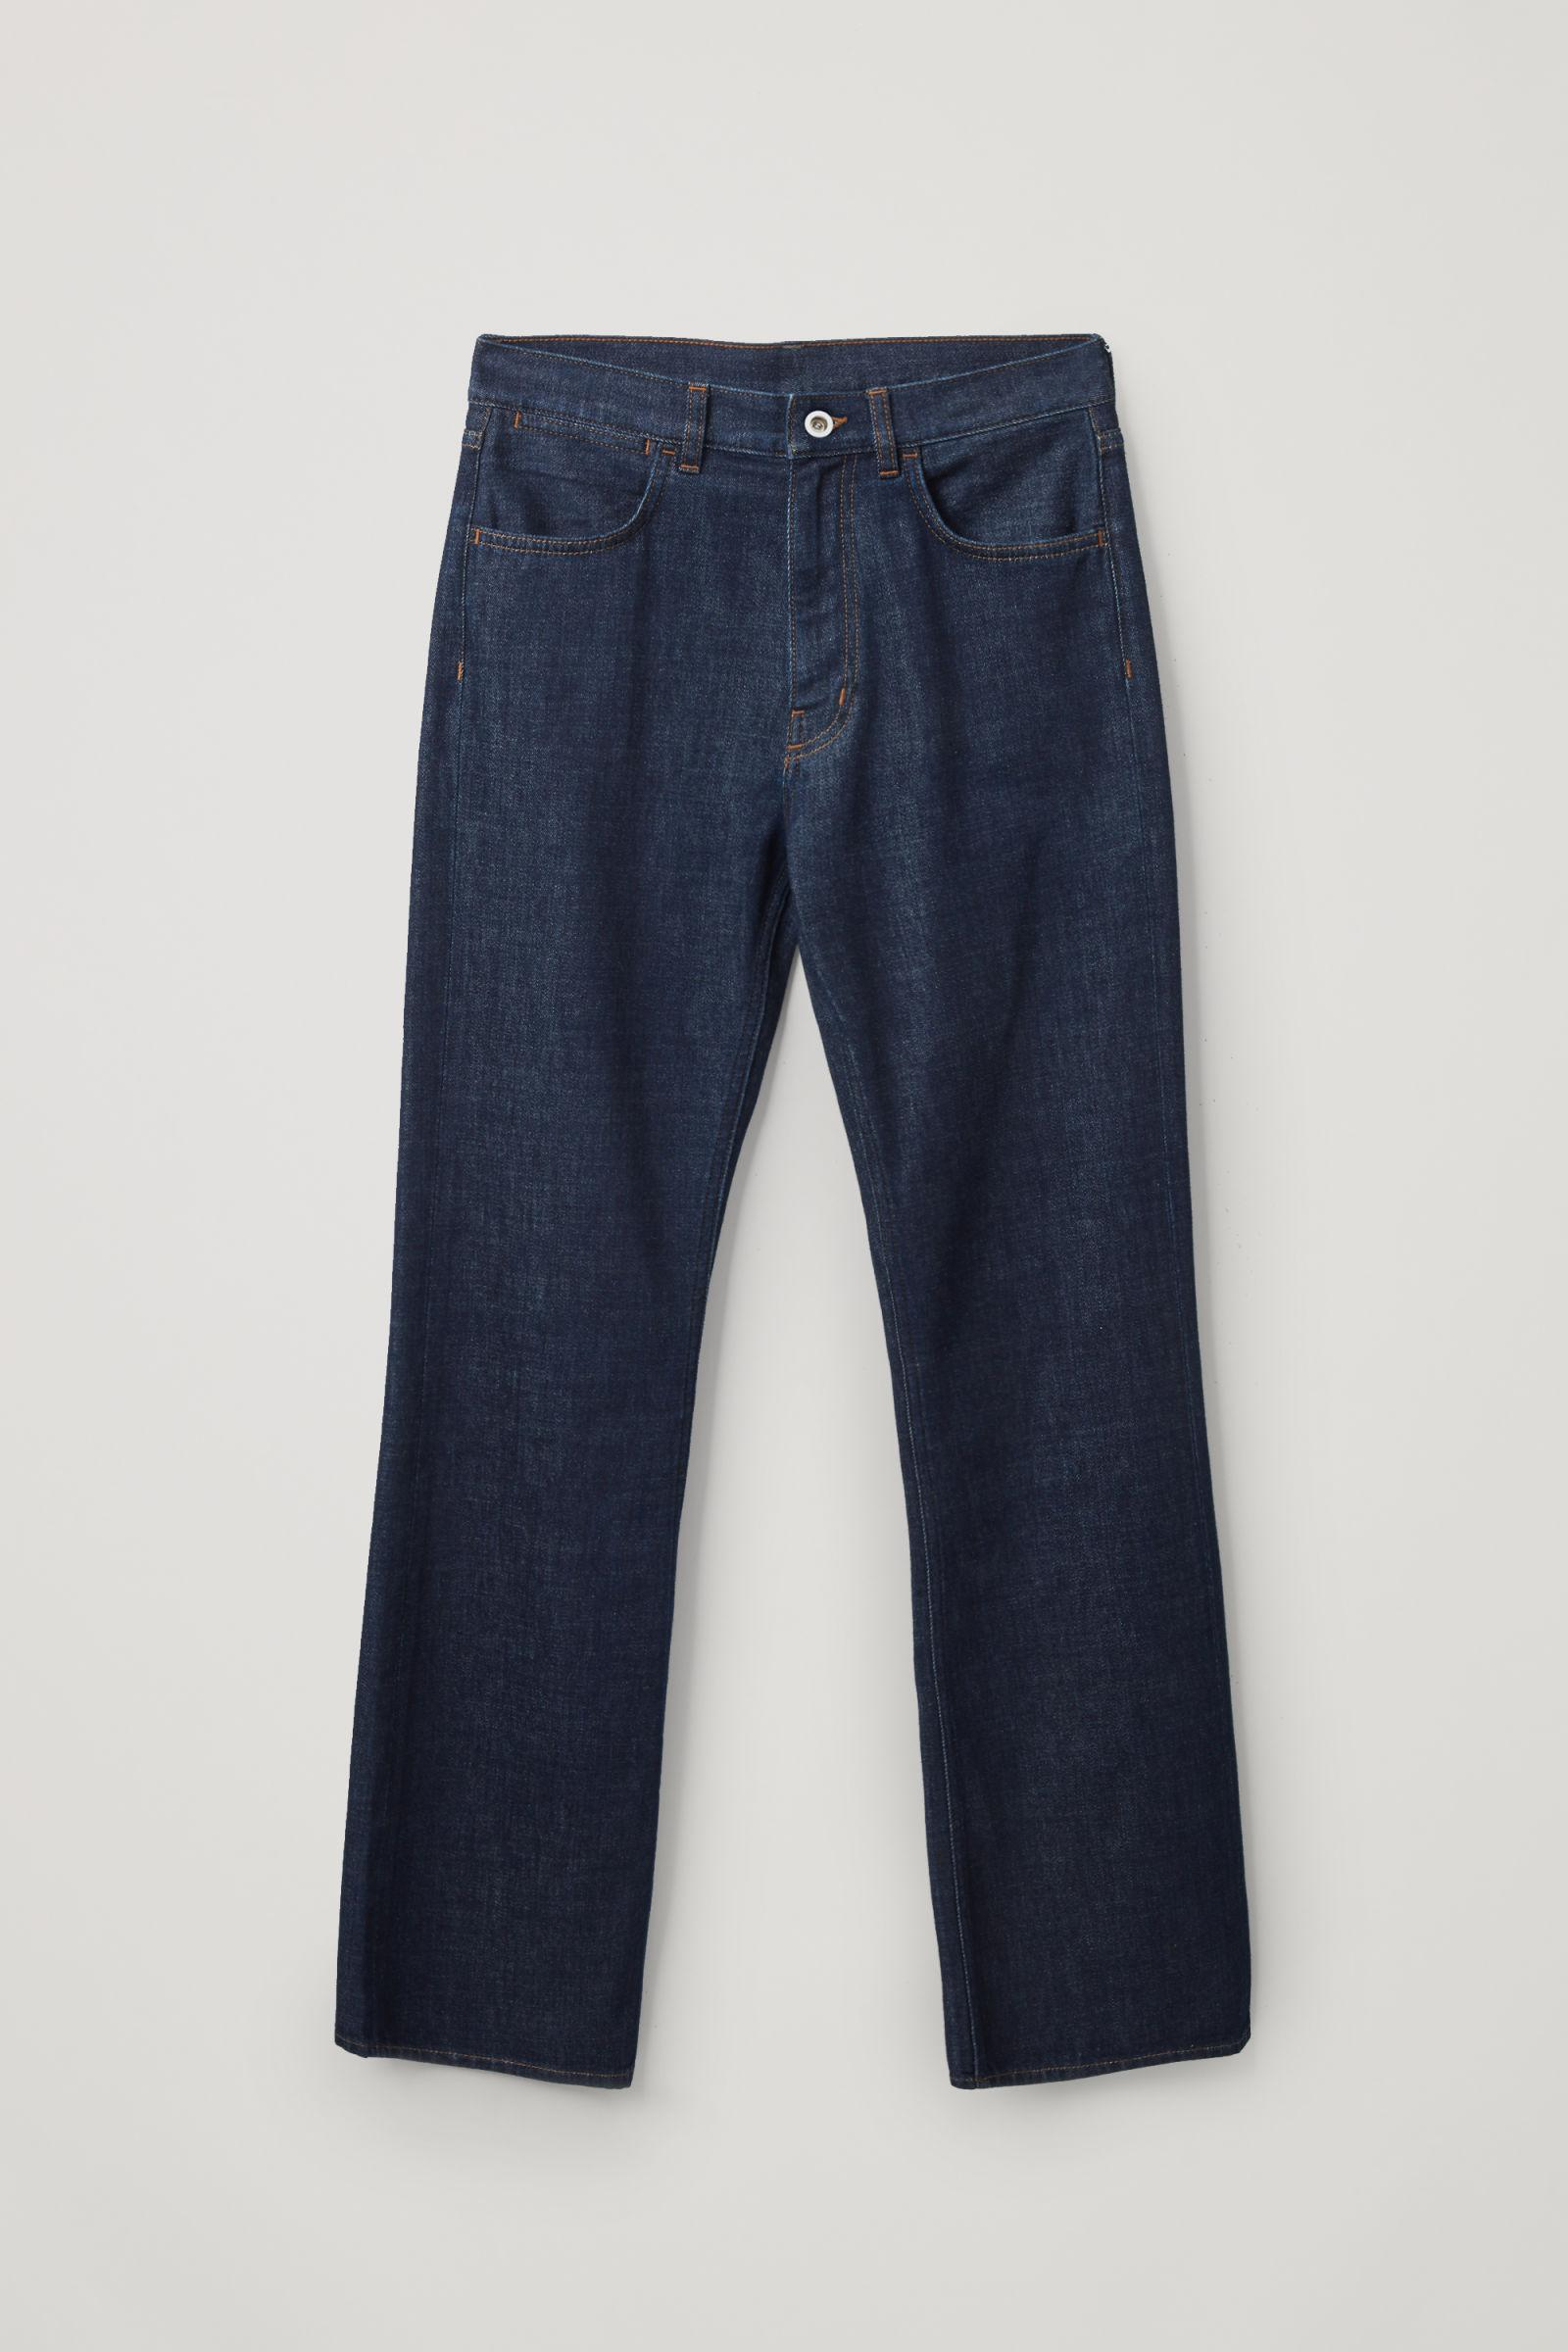 FLARED RECYCLED COTTON DENIM PANTS 8